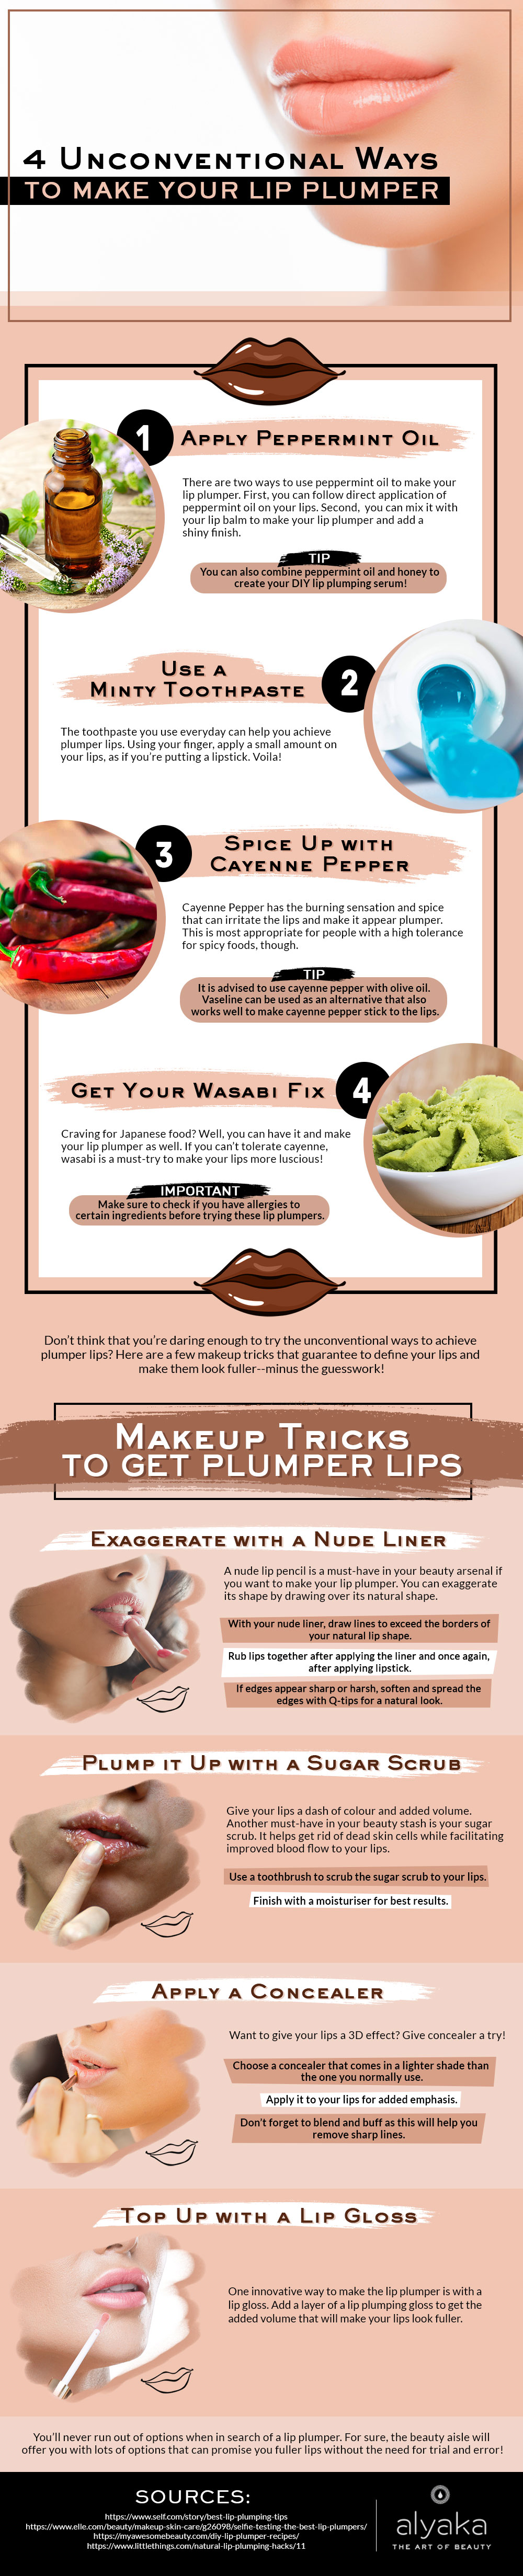 Amazing Ways and Tricks to Make Your Lips Plumper - Infographic